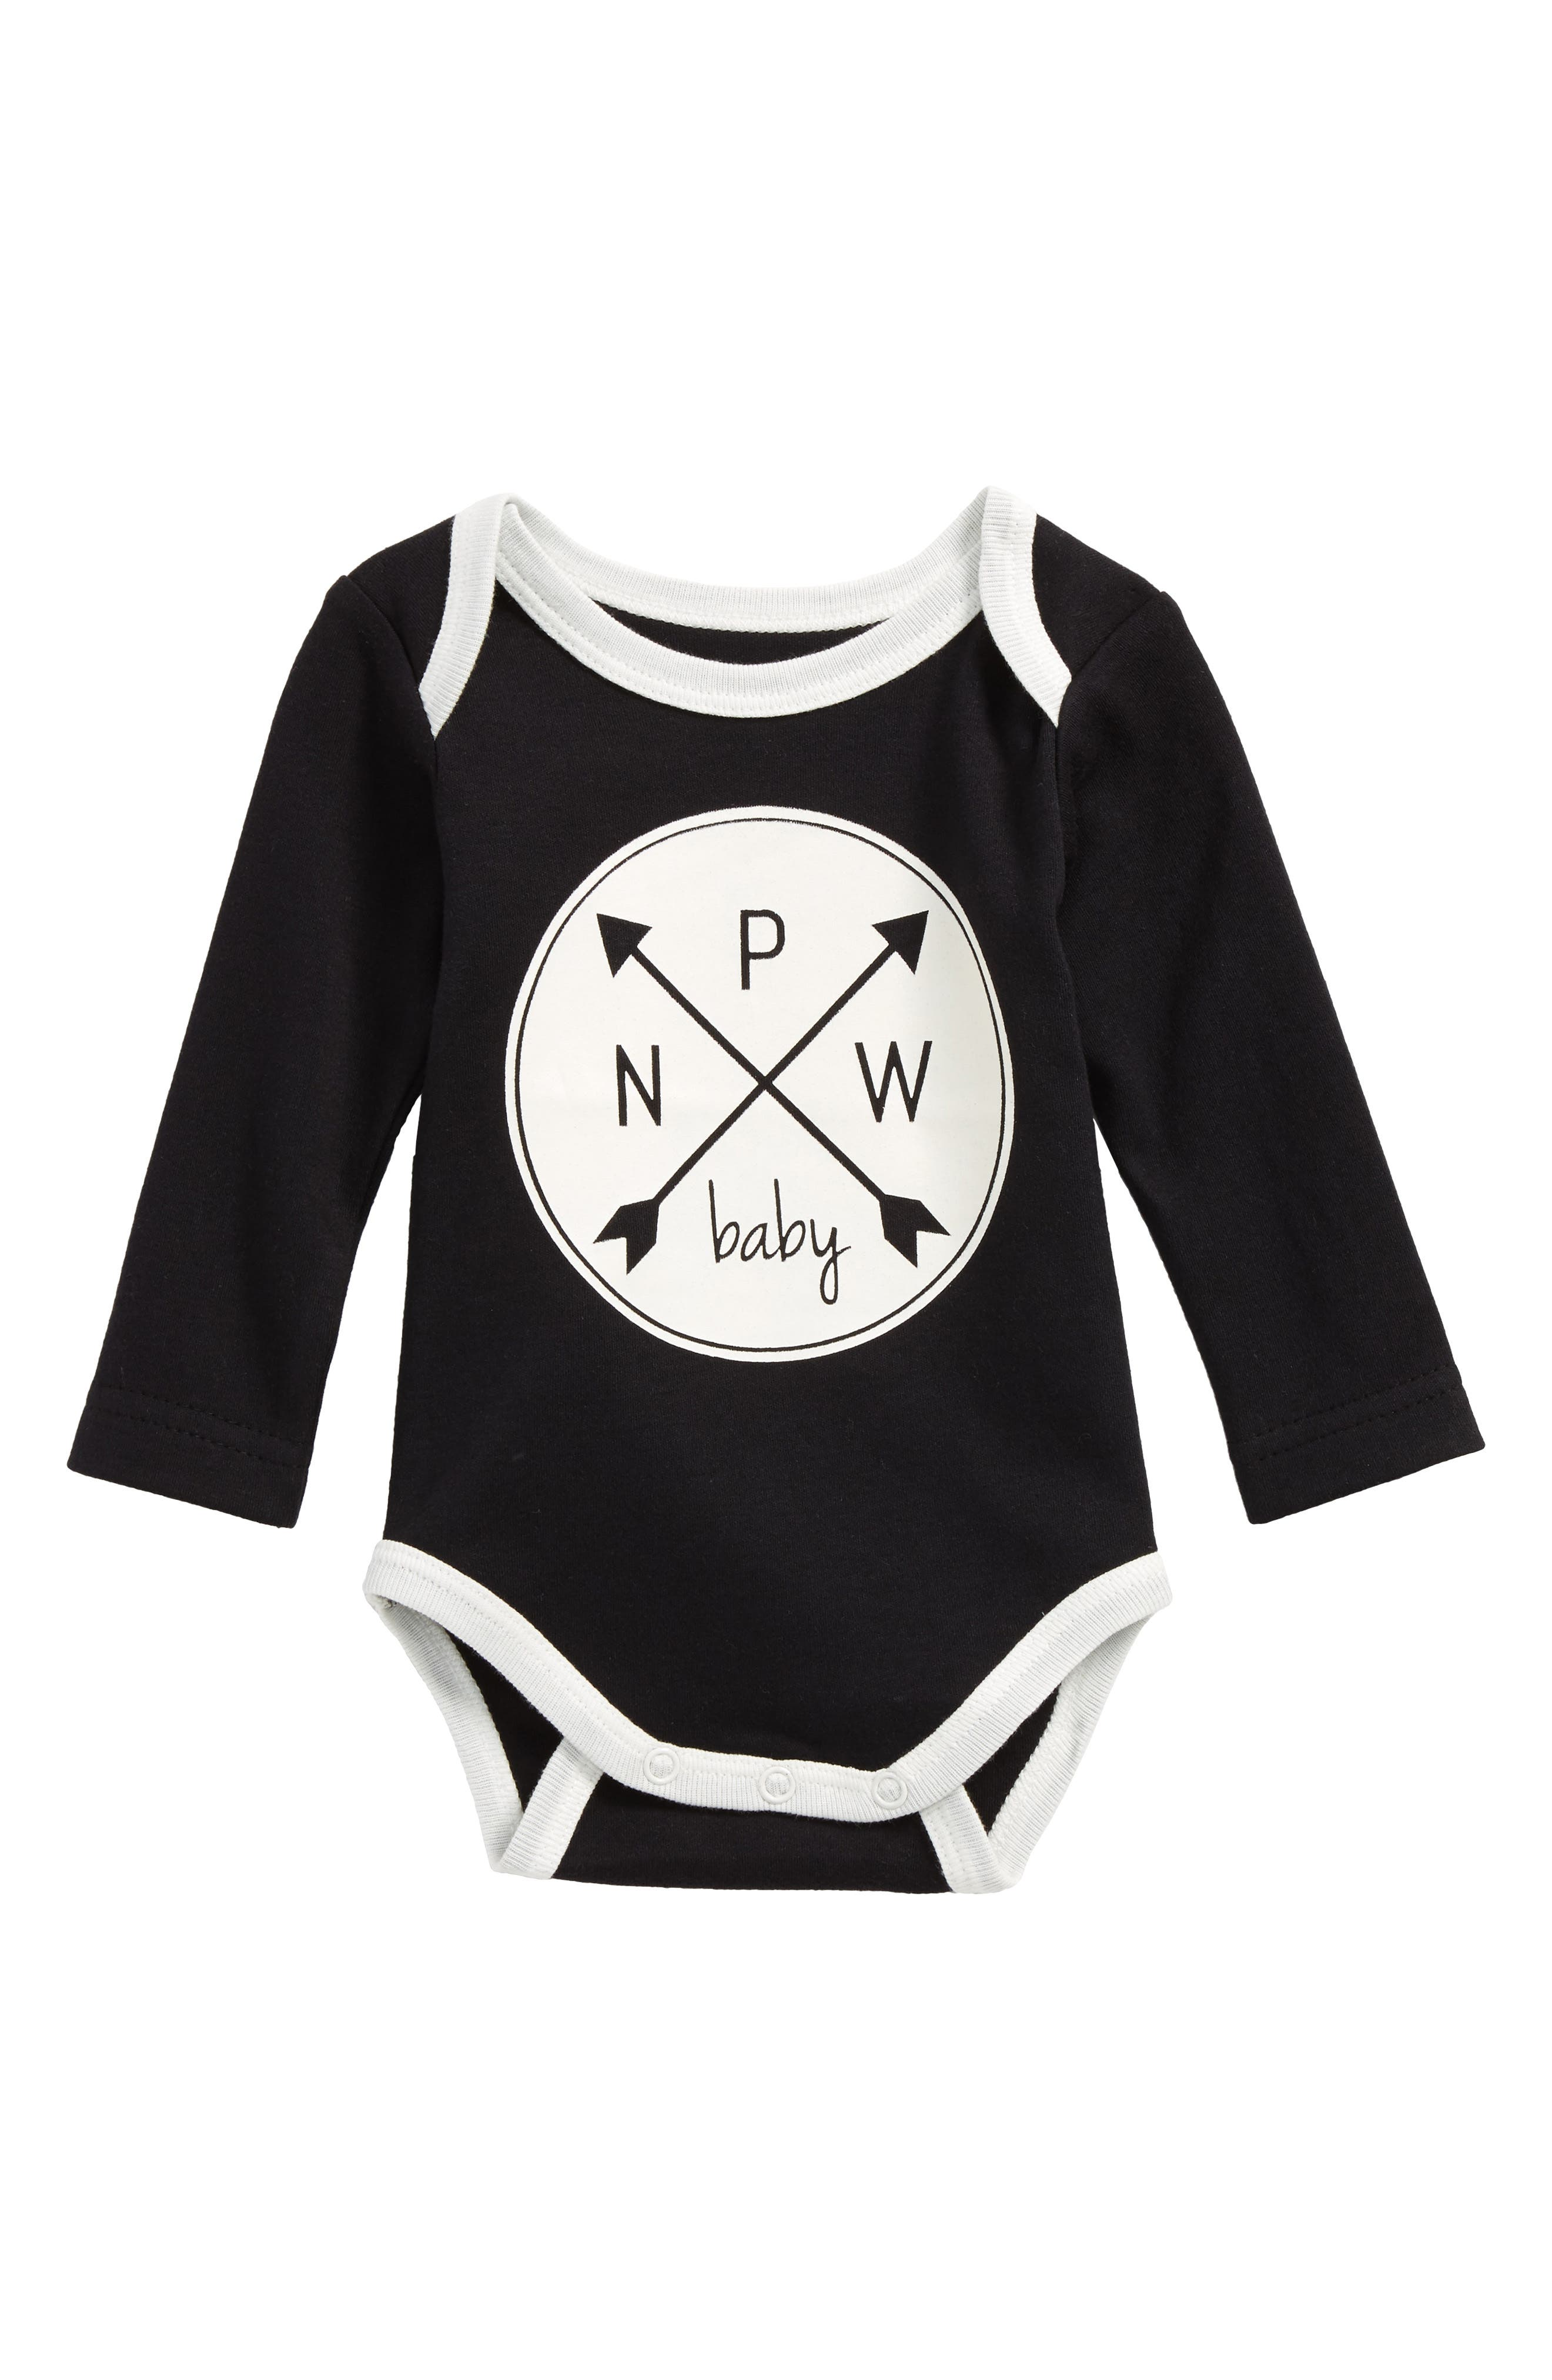 Main Image - City Mouse PNW Logo Graphic Organic Cotton Bodysuit (Baby)